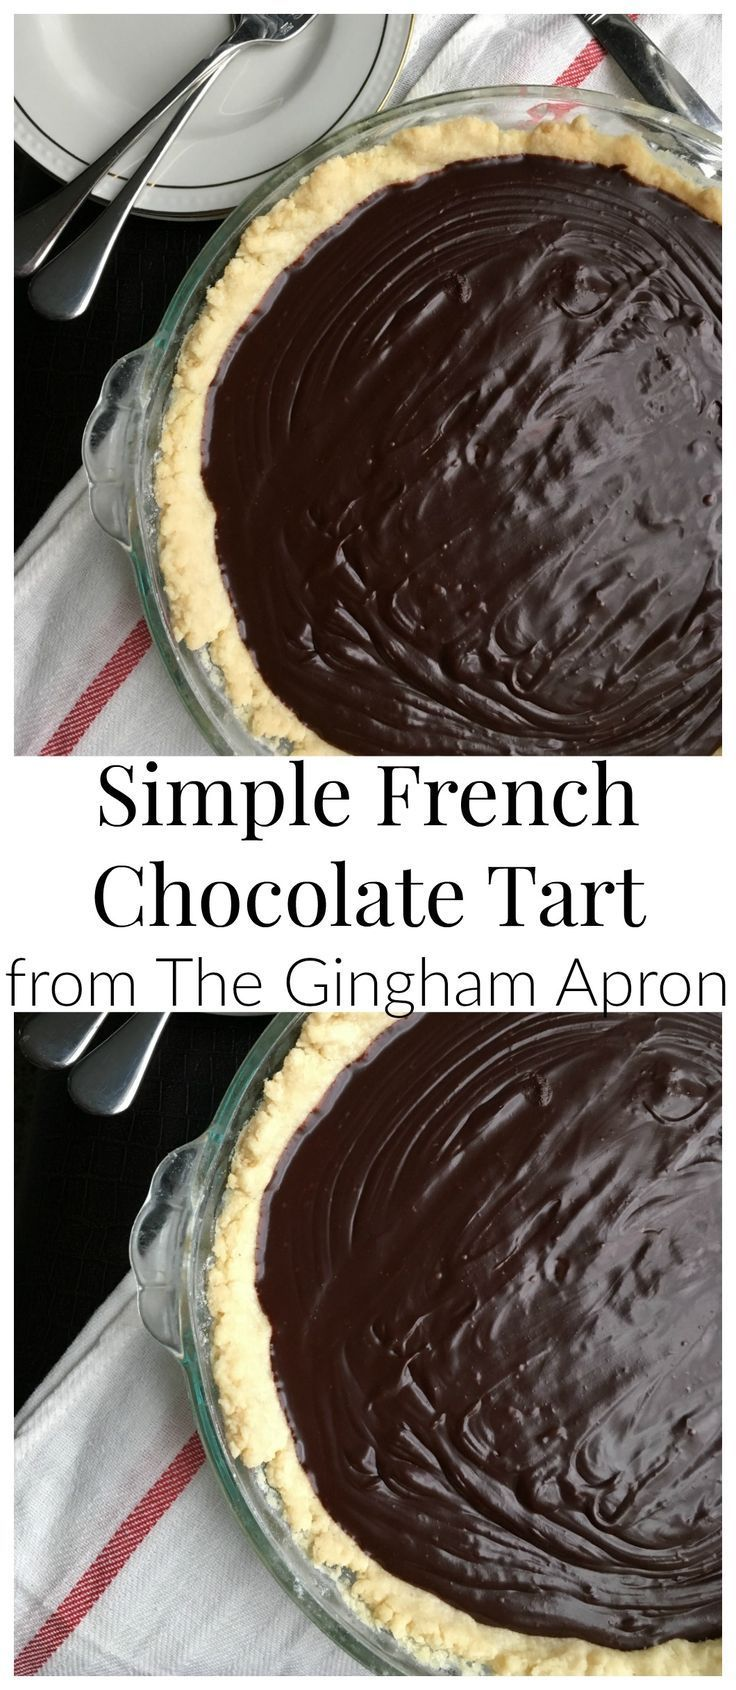 Chocolate Tart Simple French Chocolate Tart- with just a few ingredients and a few minutes, you can make this decadent and delicious tart.Simple French Chocolate Tart- with just a few ingredients and a few minutes, you can make this decadent and delicious tart.